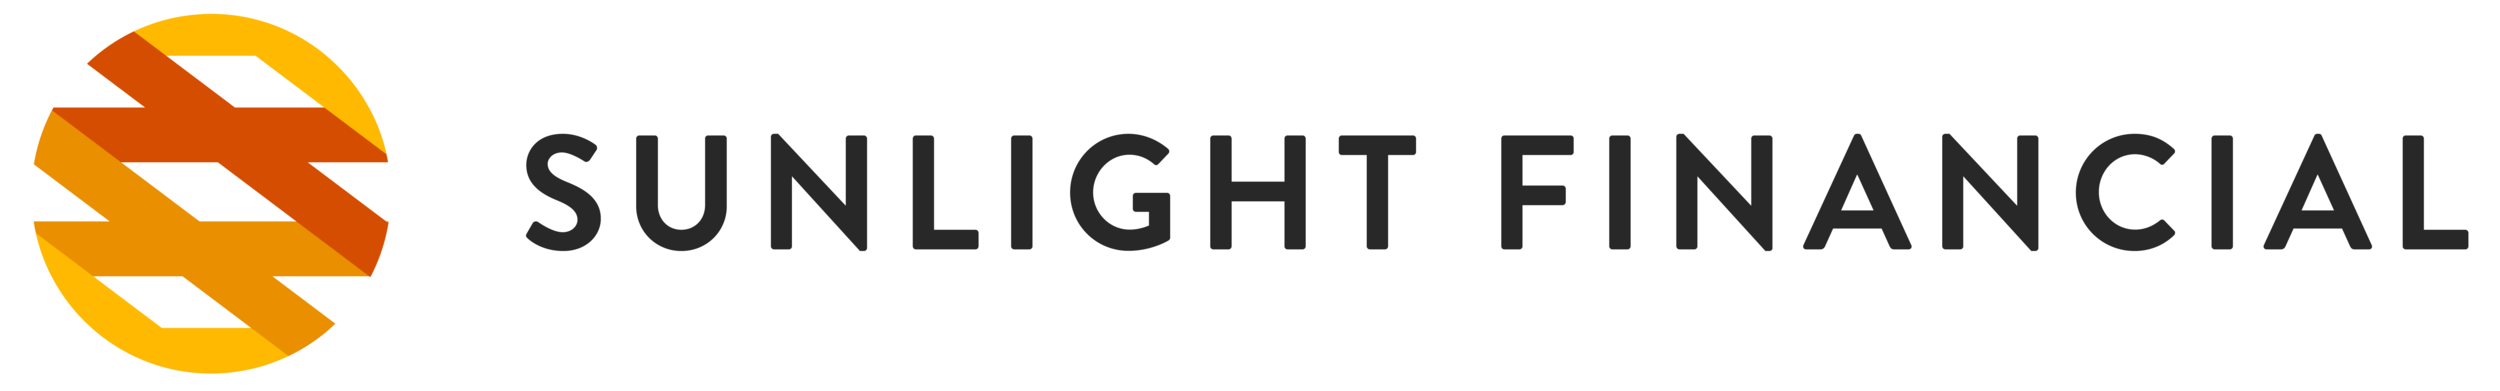 Sunlight Logo-USE THIS2.png